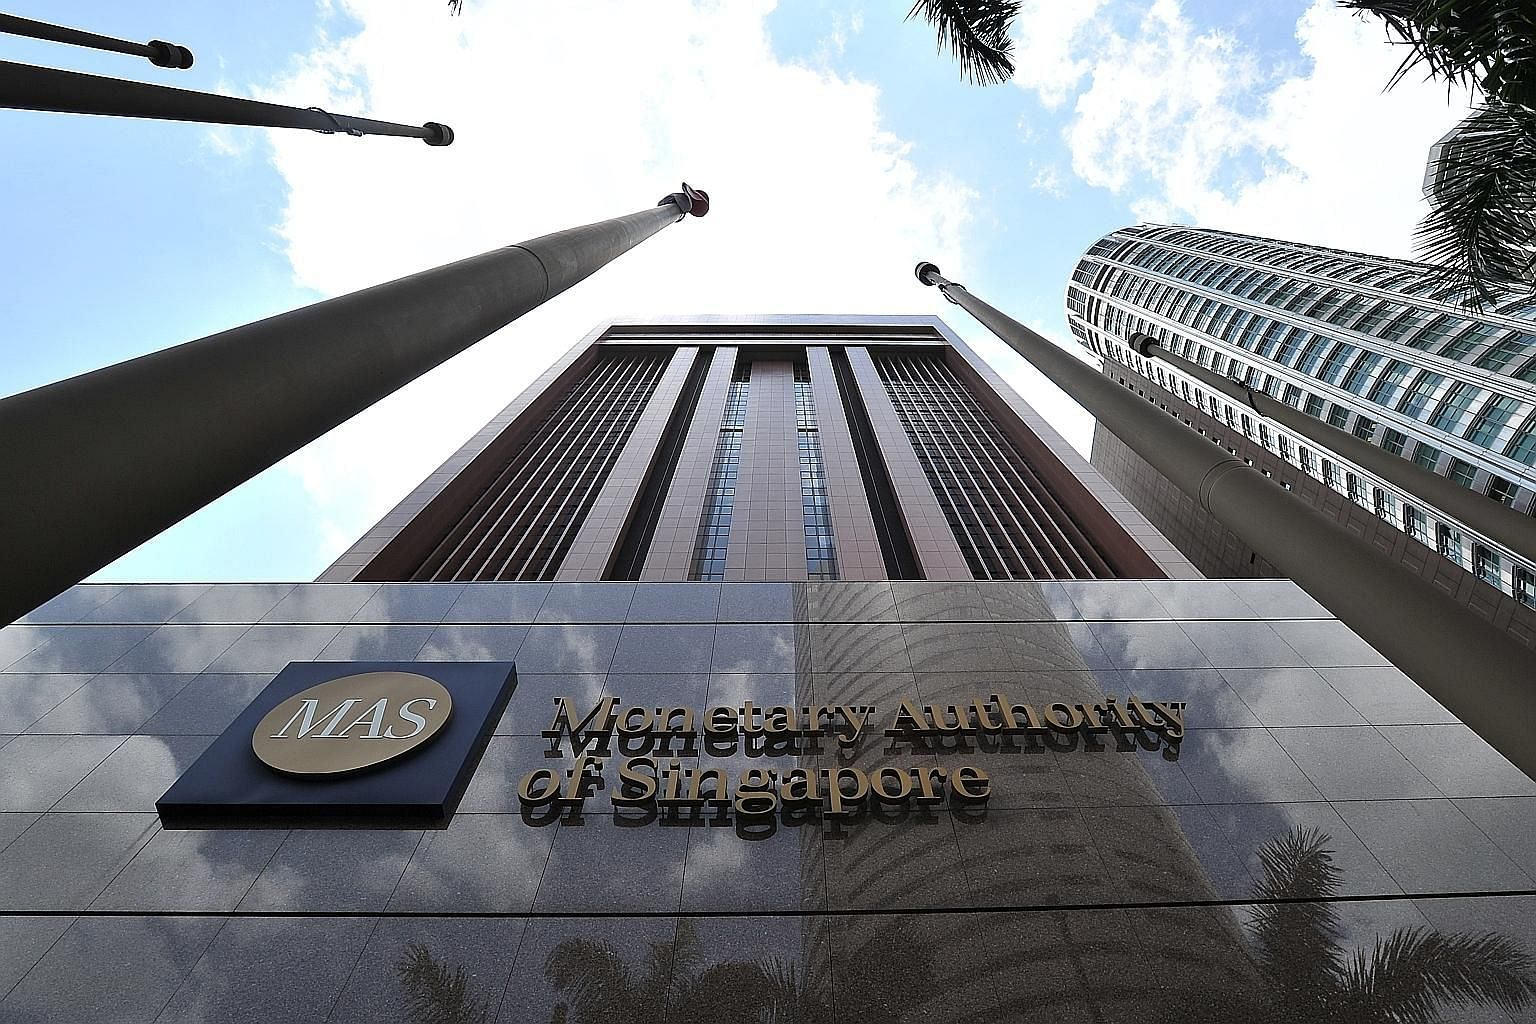 """The MAS will """"probably take a wait-and-see approach"""" and policy tweaks are more likely to come at its next meeting in October, says OCBC economist Selena Ling."""